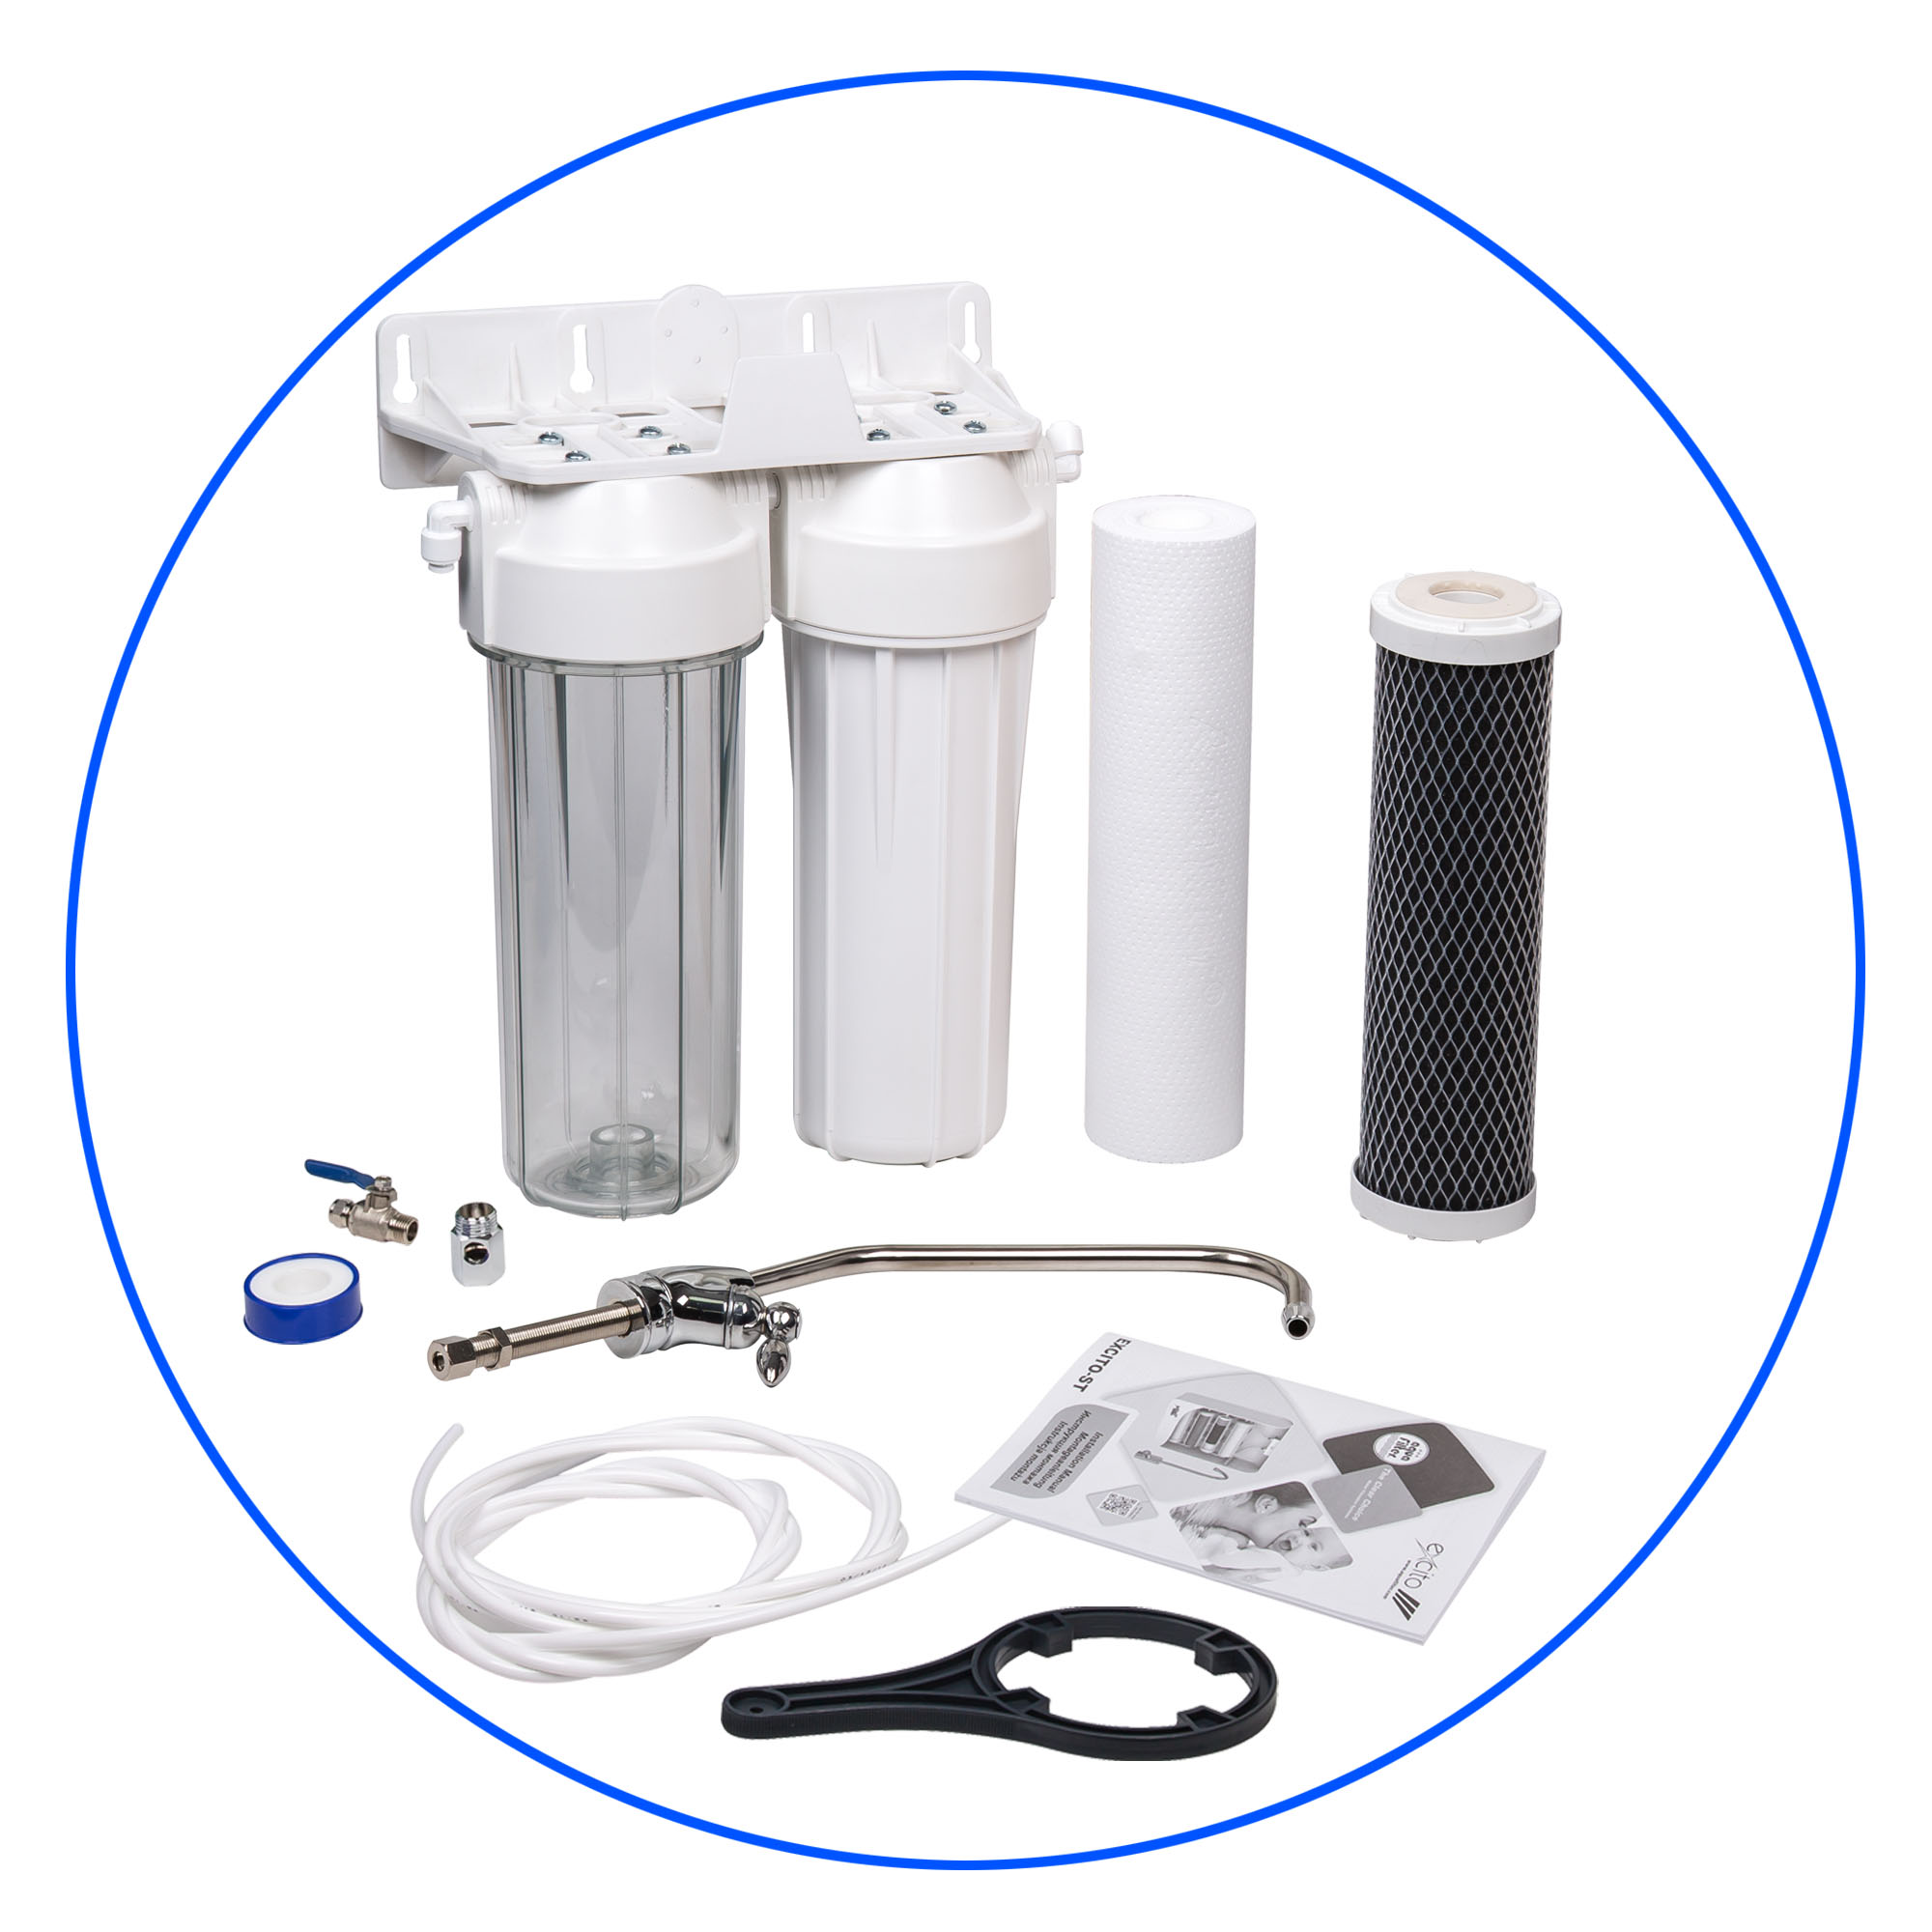 Waterfilter Under Counter Water Filter Fp2 W K1 Aquafilter